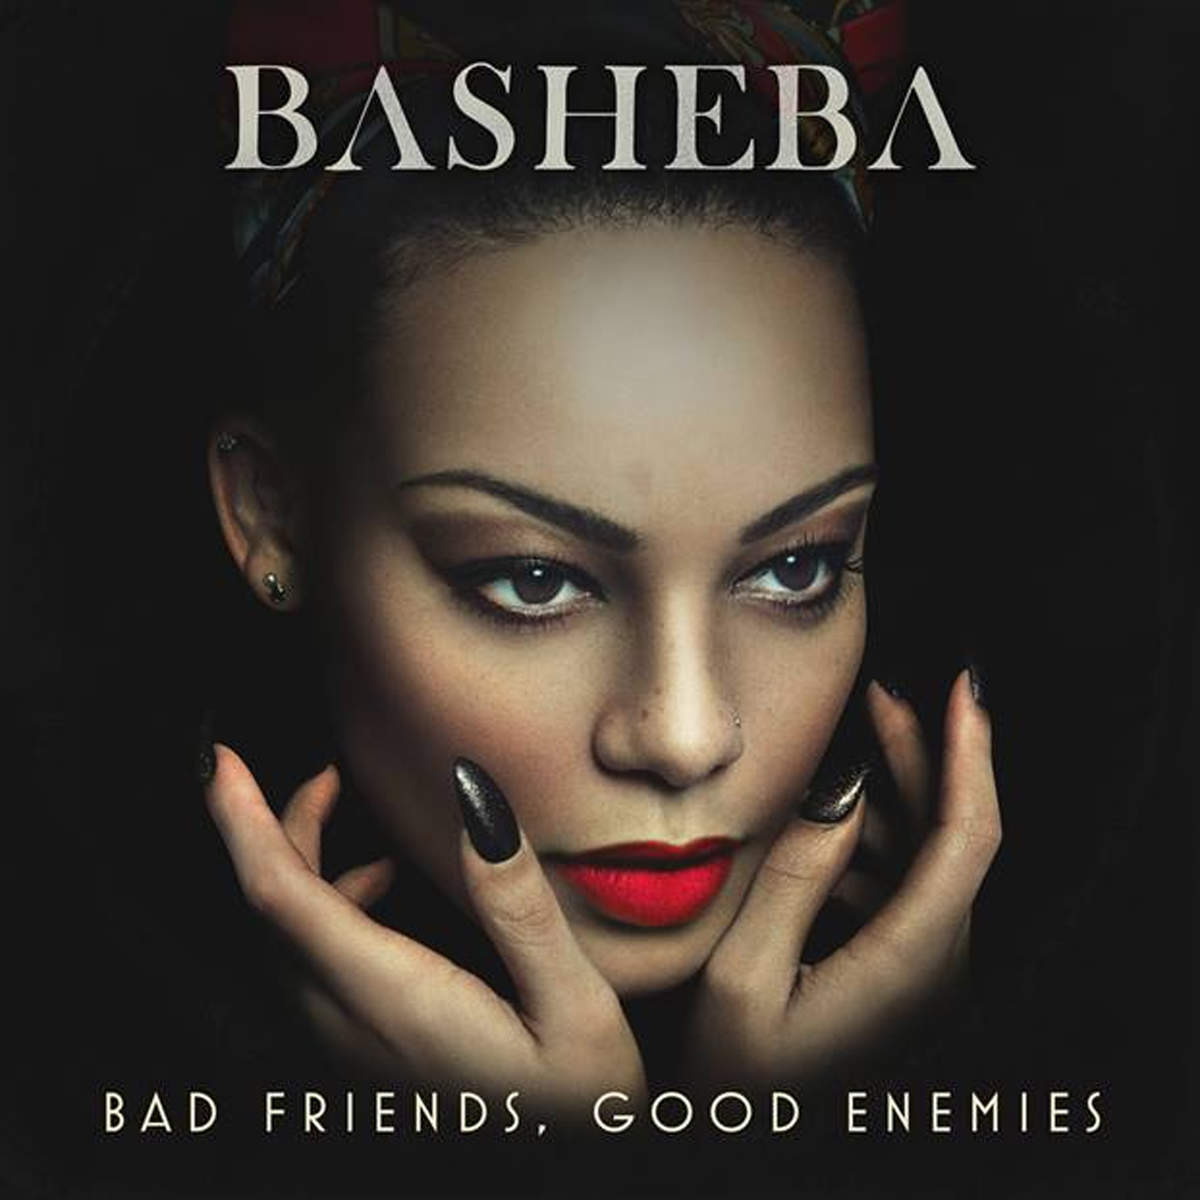 Basheba - Bad Friends, Good Enemies (EP)